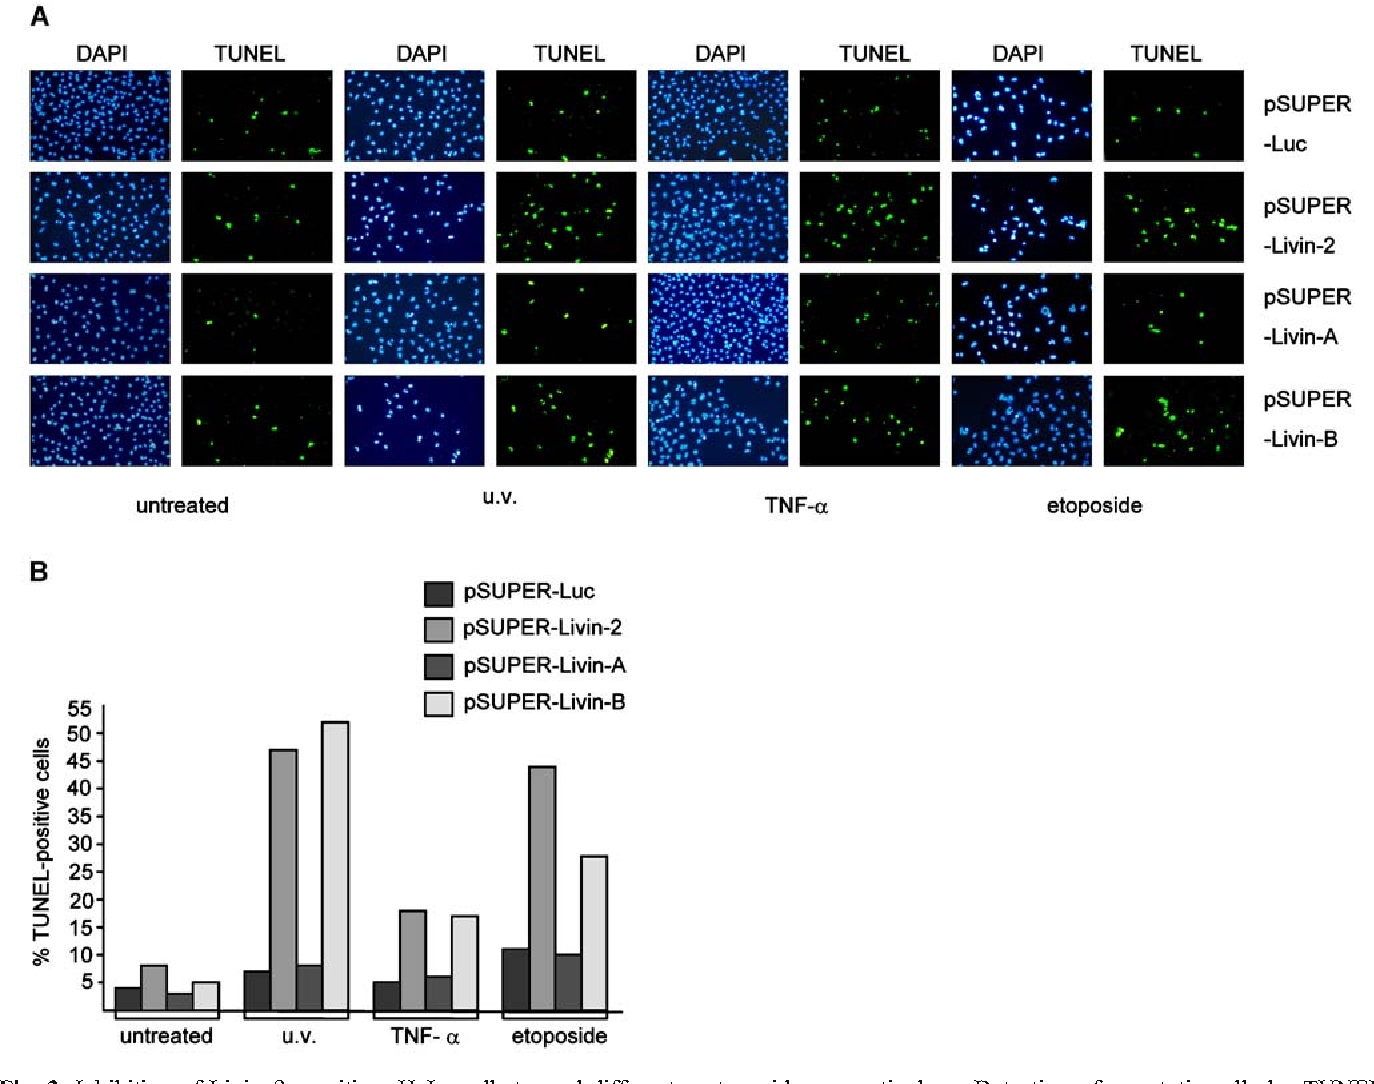 Fig. 3 Inhibition of Livin-β sensitizes HeLa cells toward different proapoptotic stimuli in an isoform-specific manner. Cells were transfected with the indicated pSUPER vectors and were left either untreated or exposed to ultraviolet (uv) irradiation, TNFα, or etoposide, respectively. a Detection of apoptotic cells by TUNEL assay. Cell nuclei were visualized by DAPI staining. b Percentage of TUNEL-positive cells